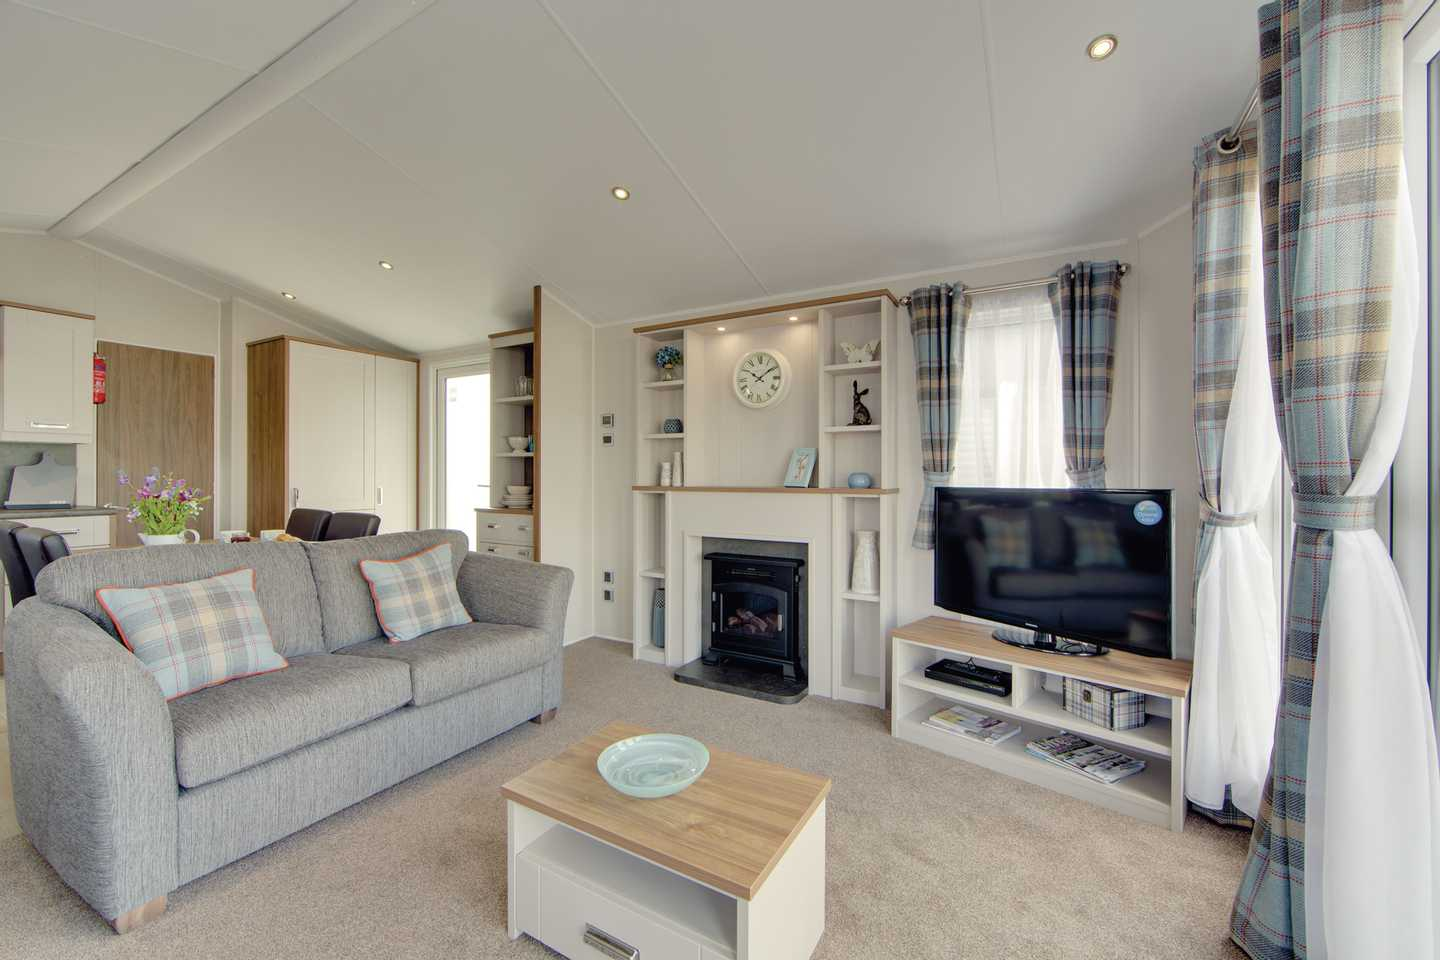 Interior of a Willerby Sheraton static caravan